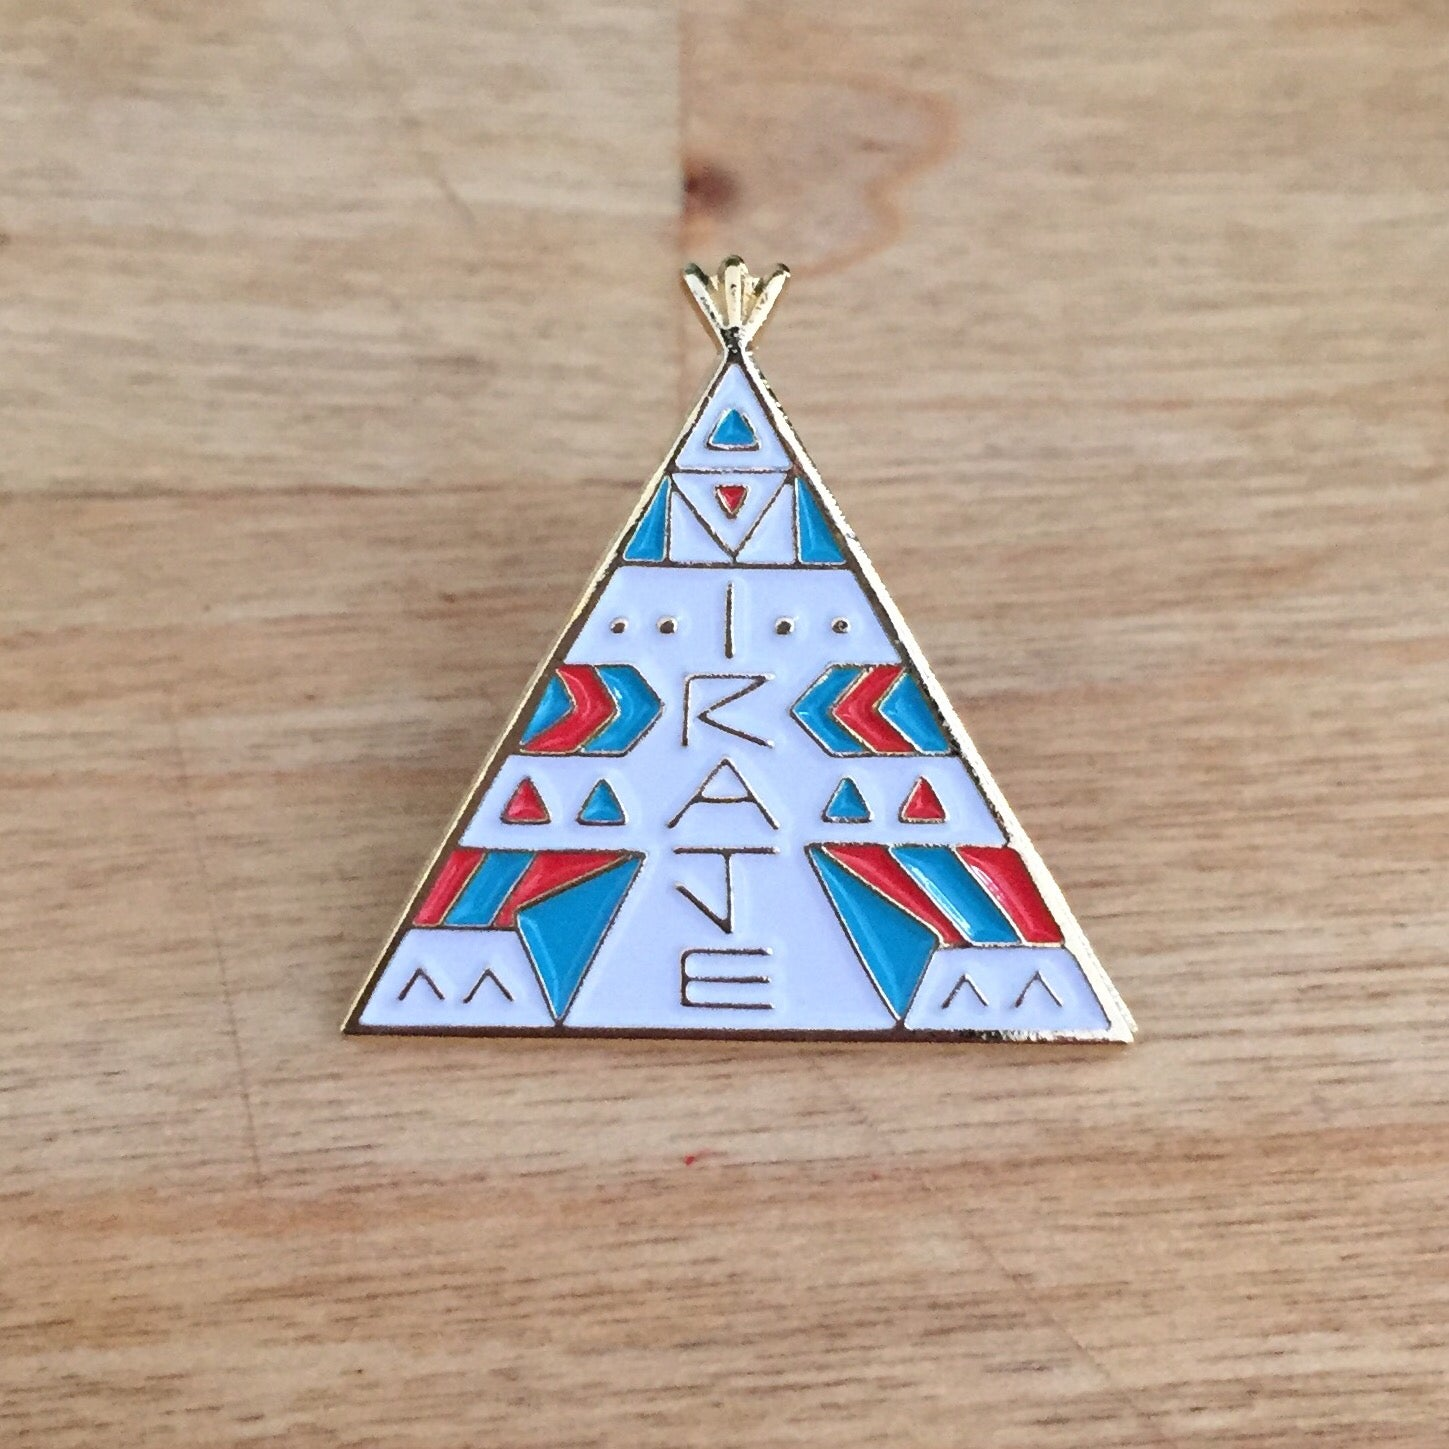 Image of Tipi pins, by Miraje